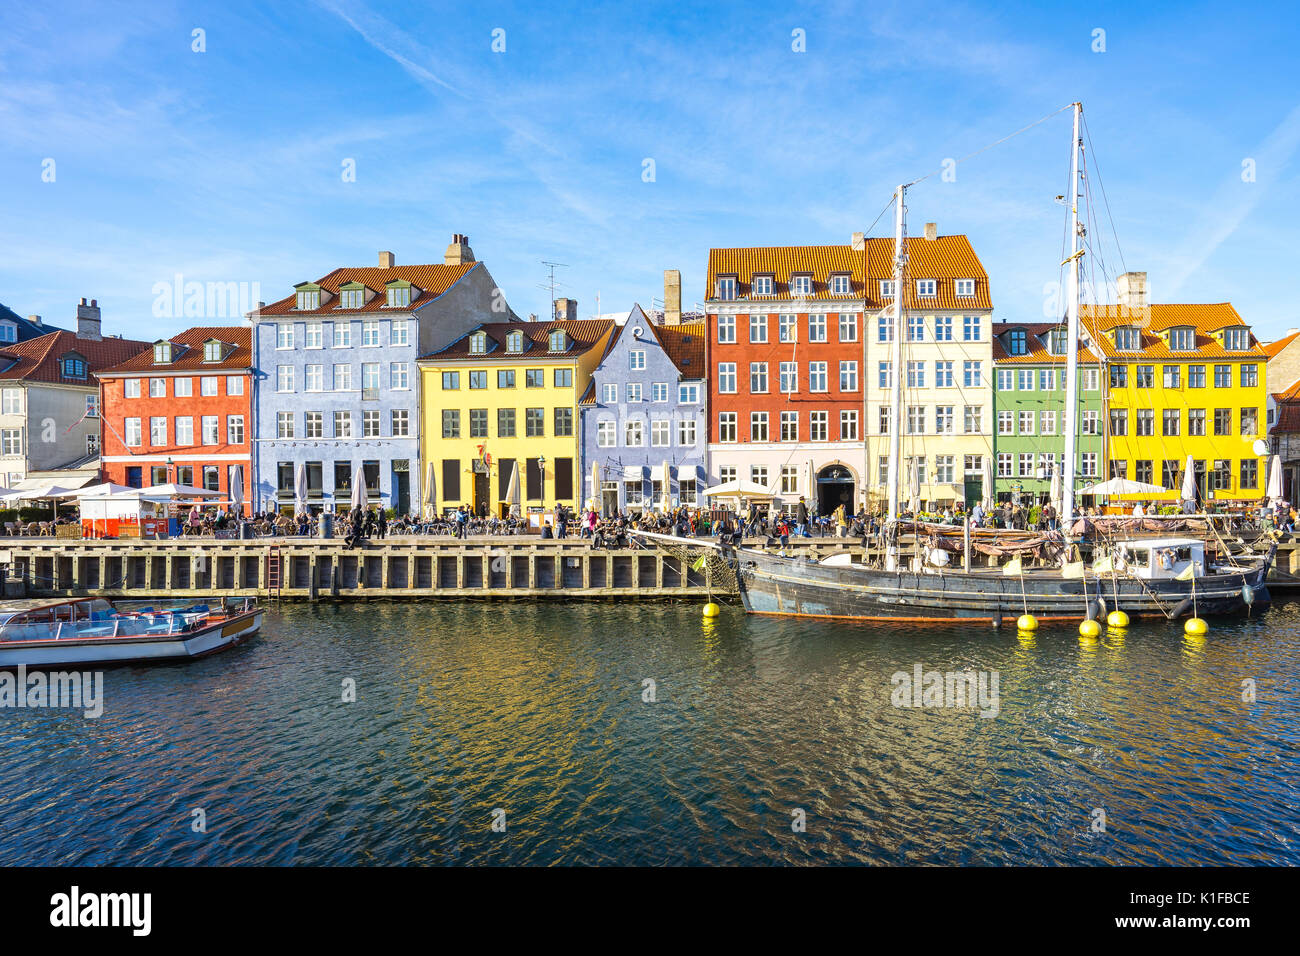 Copenhagen, Denmark - May 1, 2017: Nyhavn was originally a busy commercial port where ships from all over the world would dock. The area was packed wi - Stock Image